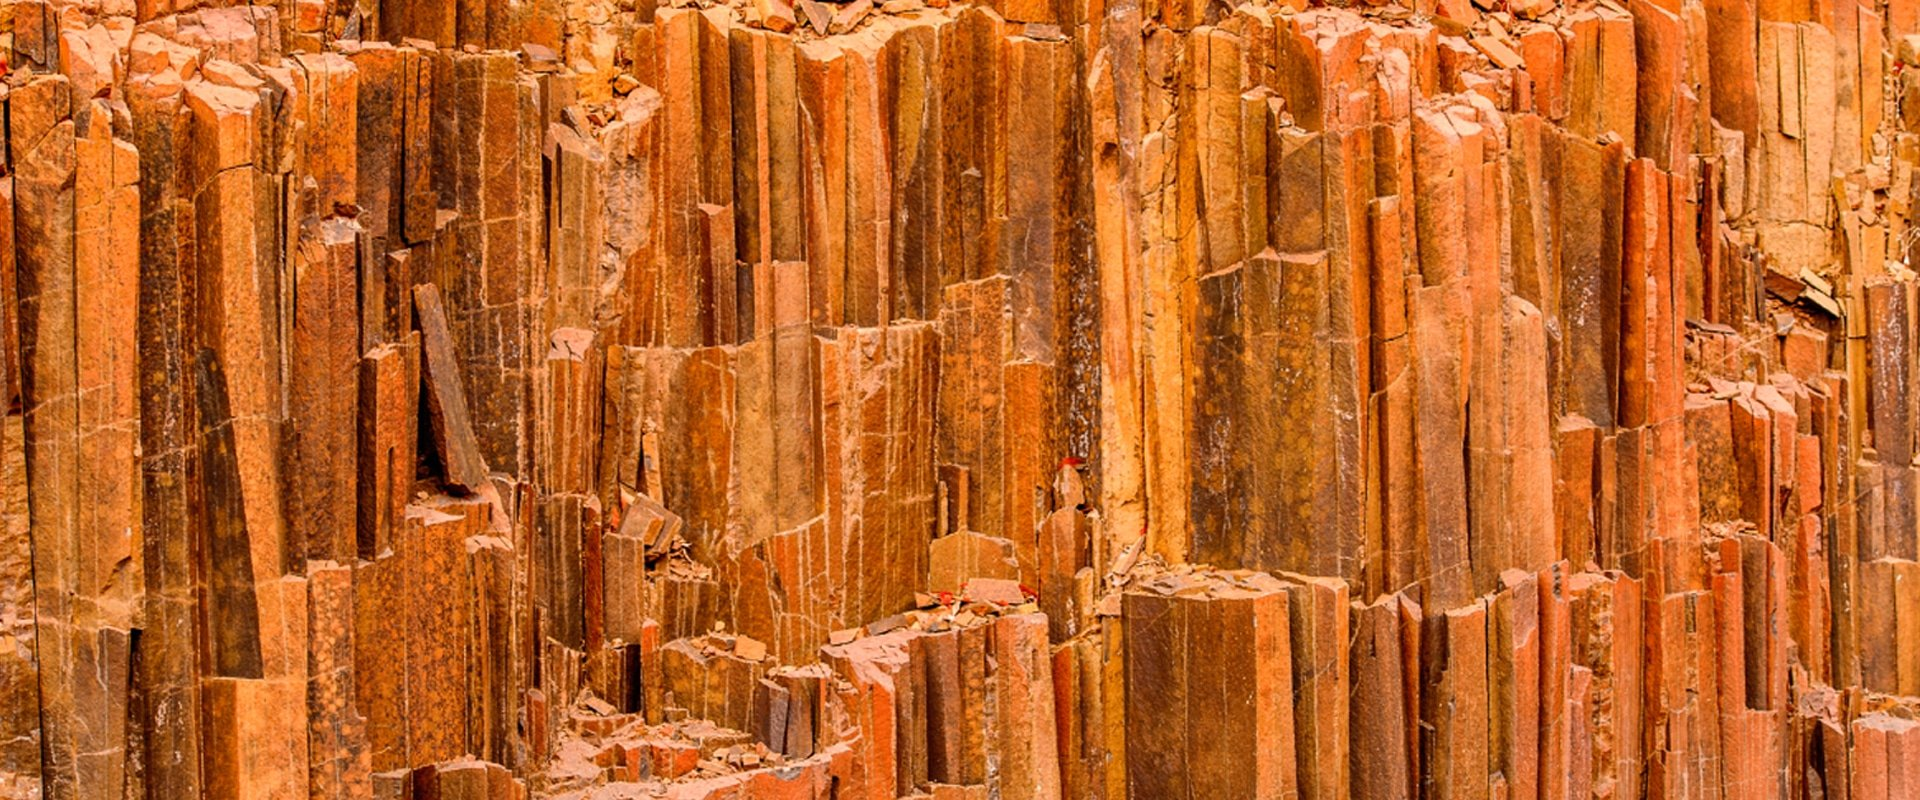 View the geological Organ Pipes formation